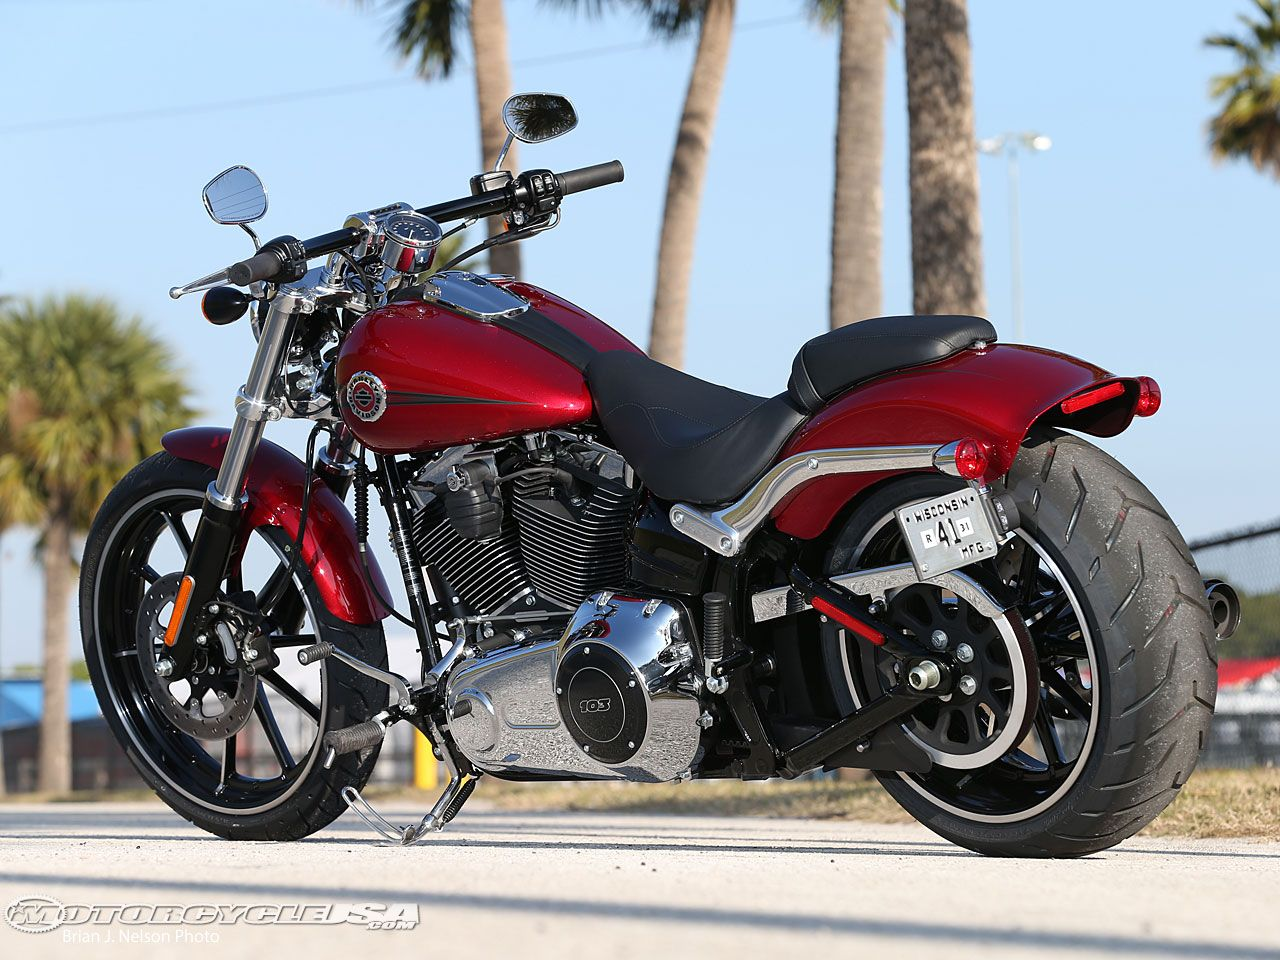 The new 2013 Harley-Davidson Breakout is offered in Vivid ...